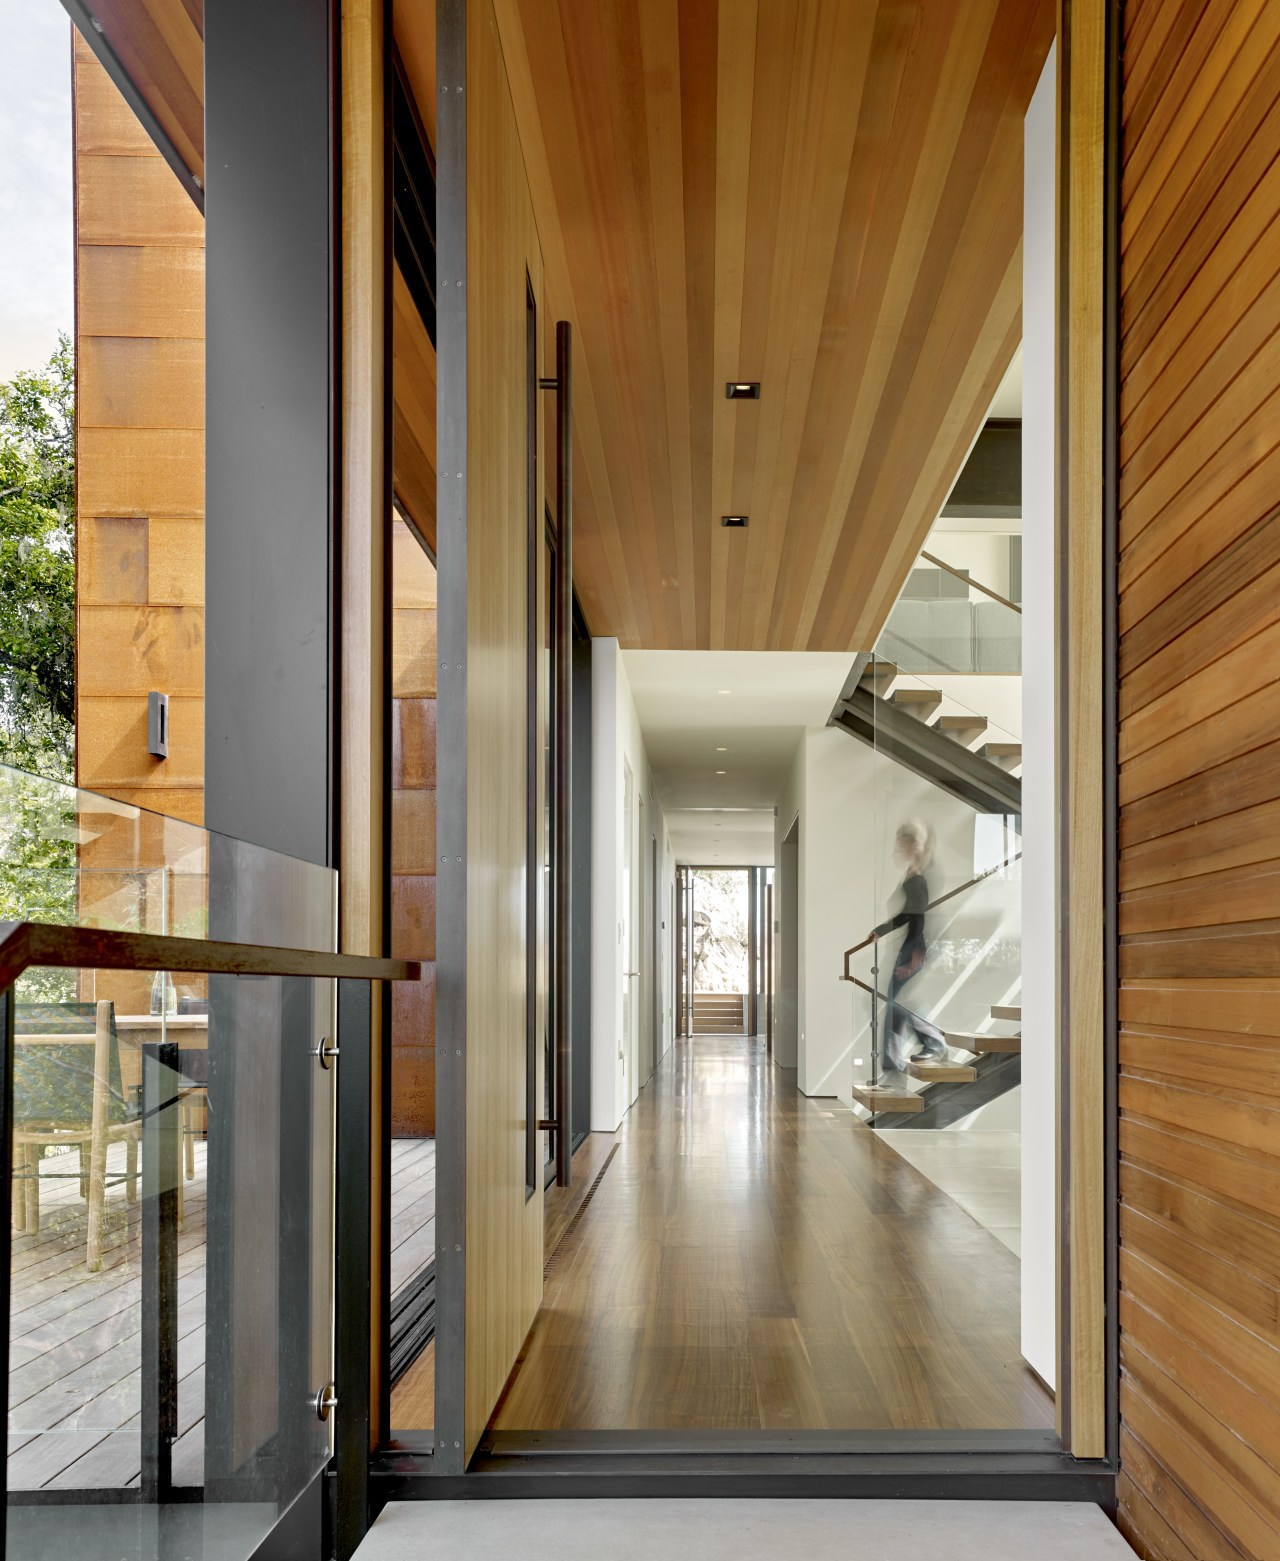 ​​​​​​​From the entrance of this home, there's a architecture, floor, glass, hall, hardwood, home, house, interior design, lobby, entranceway, tiled floor, timber ceiling